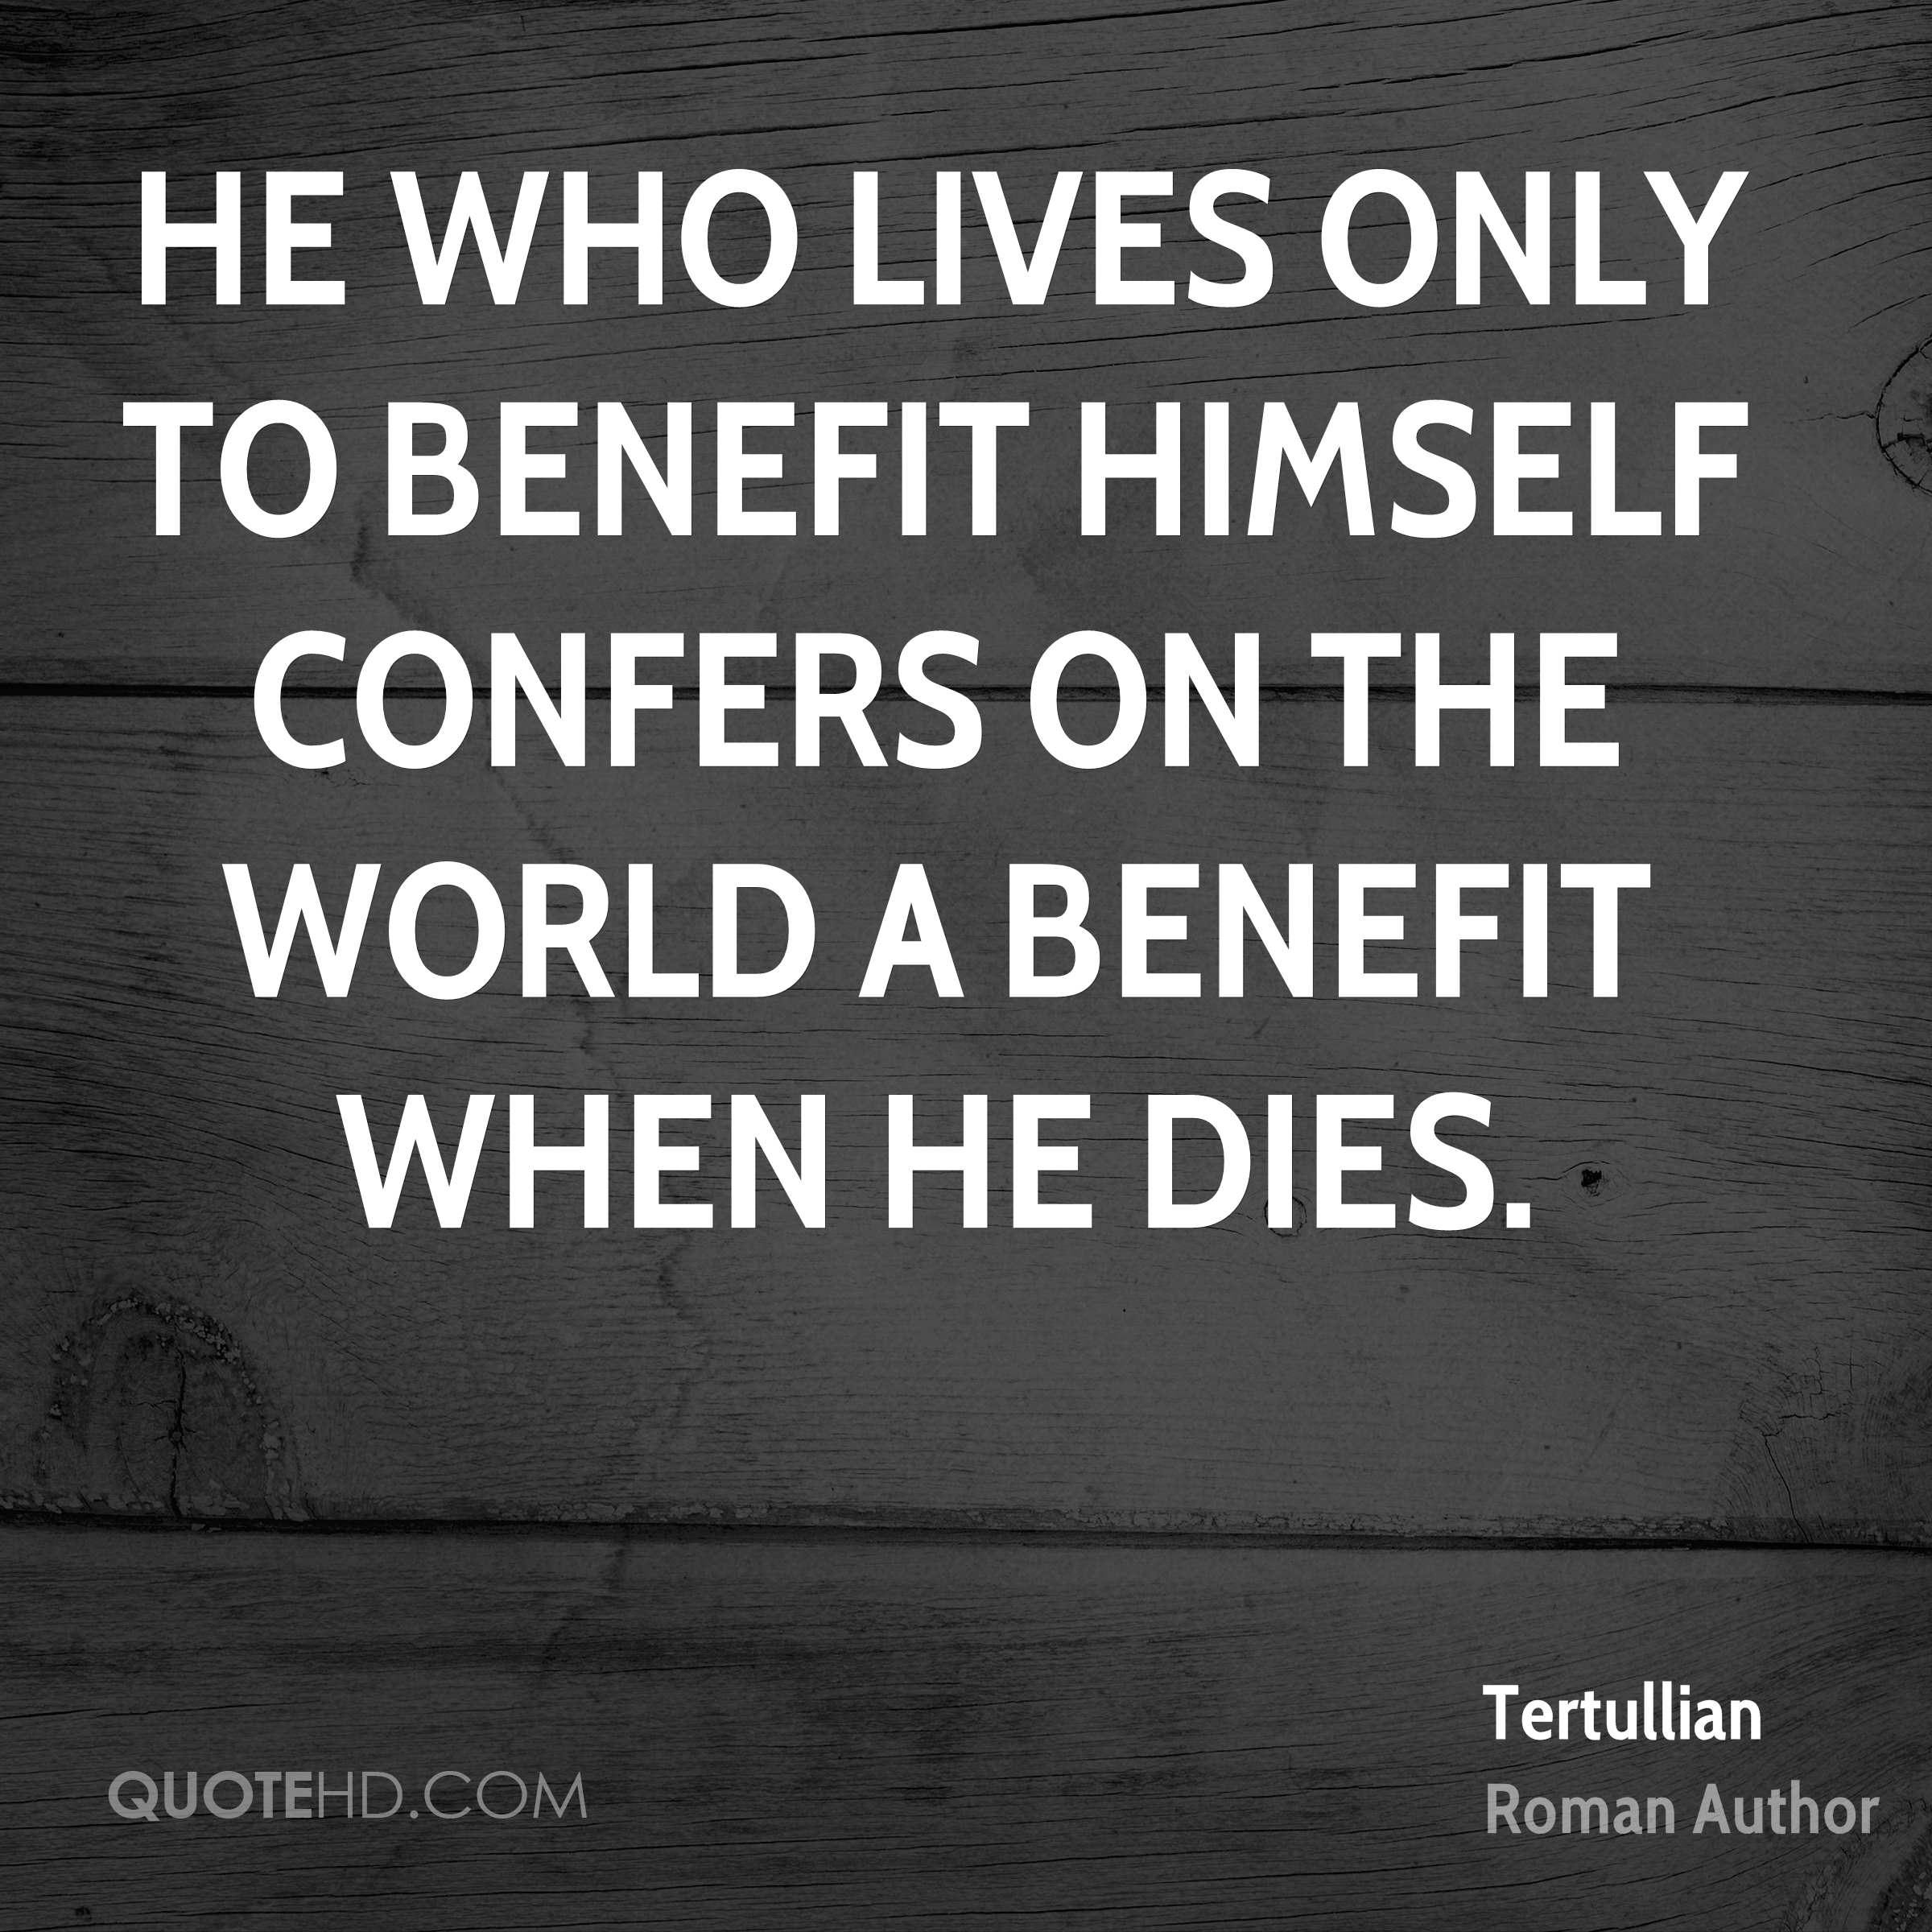 He who lives only to benefit himself confers on the world a benefit when he dies.